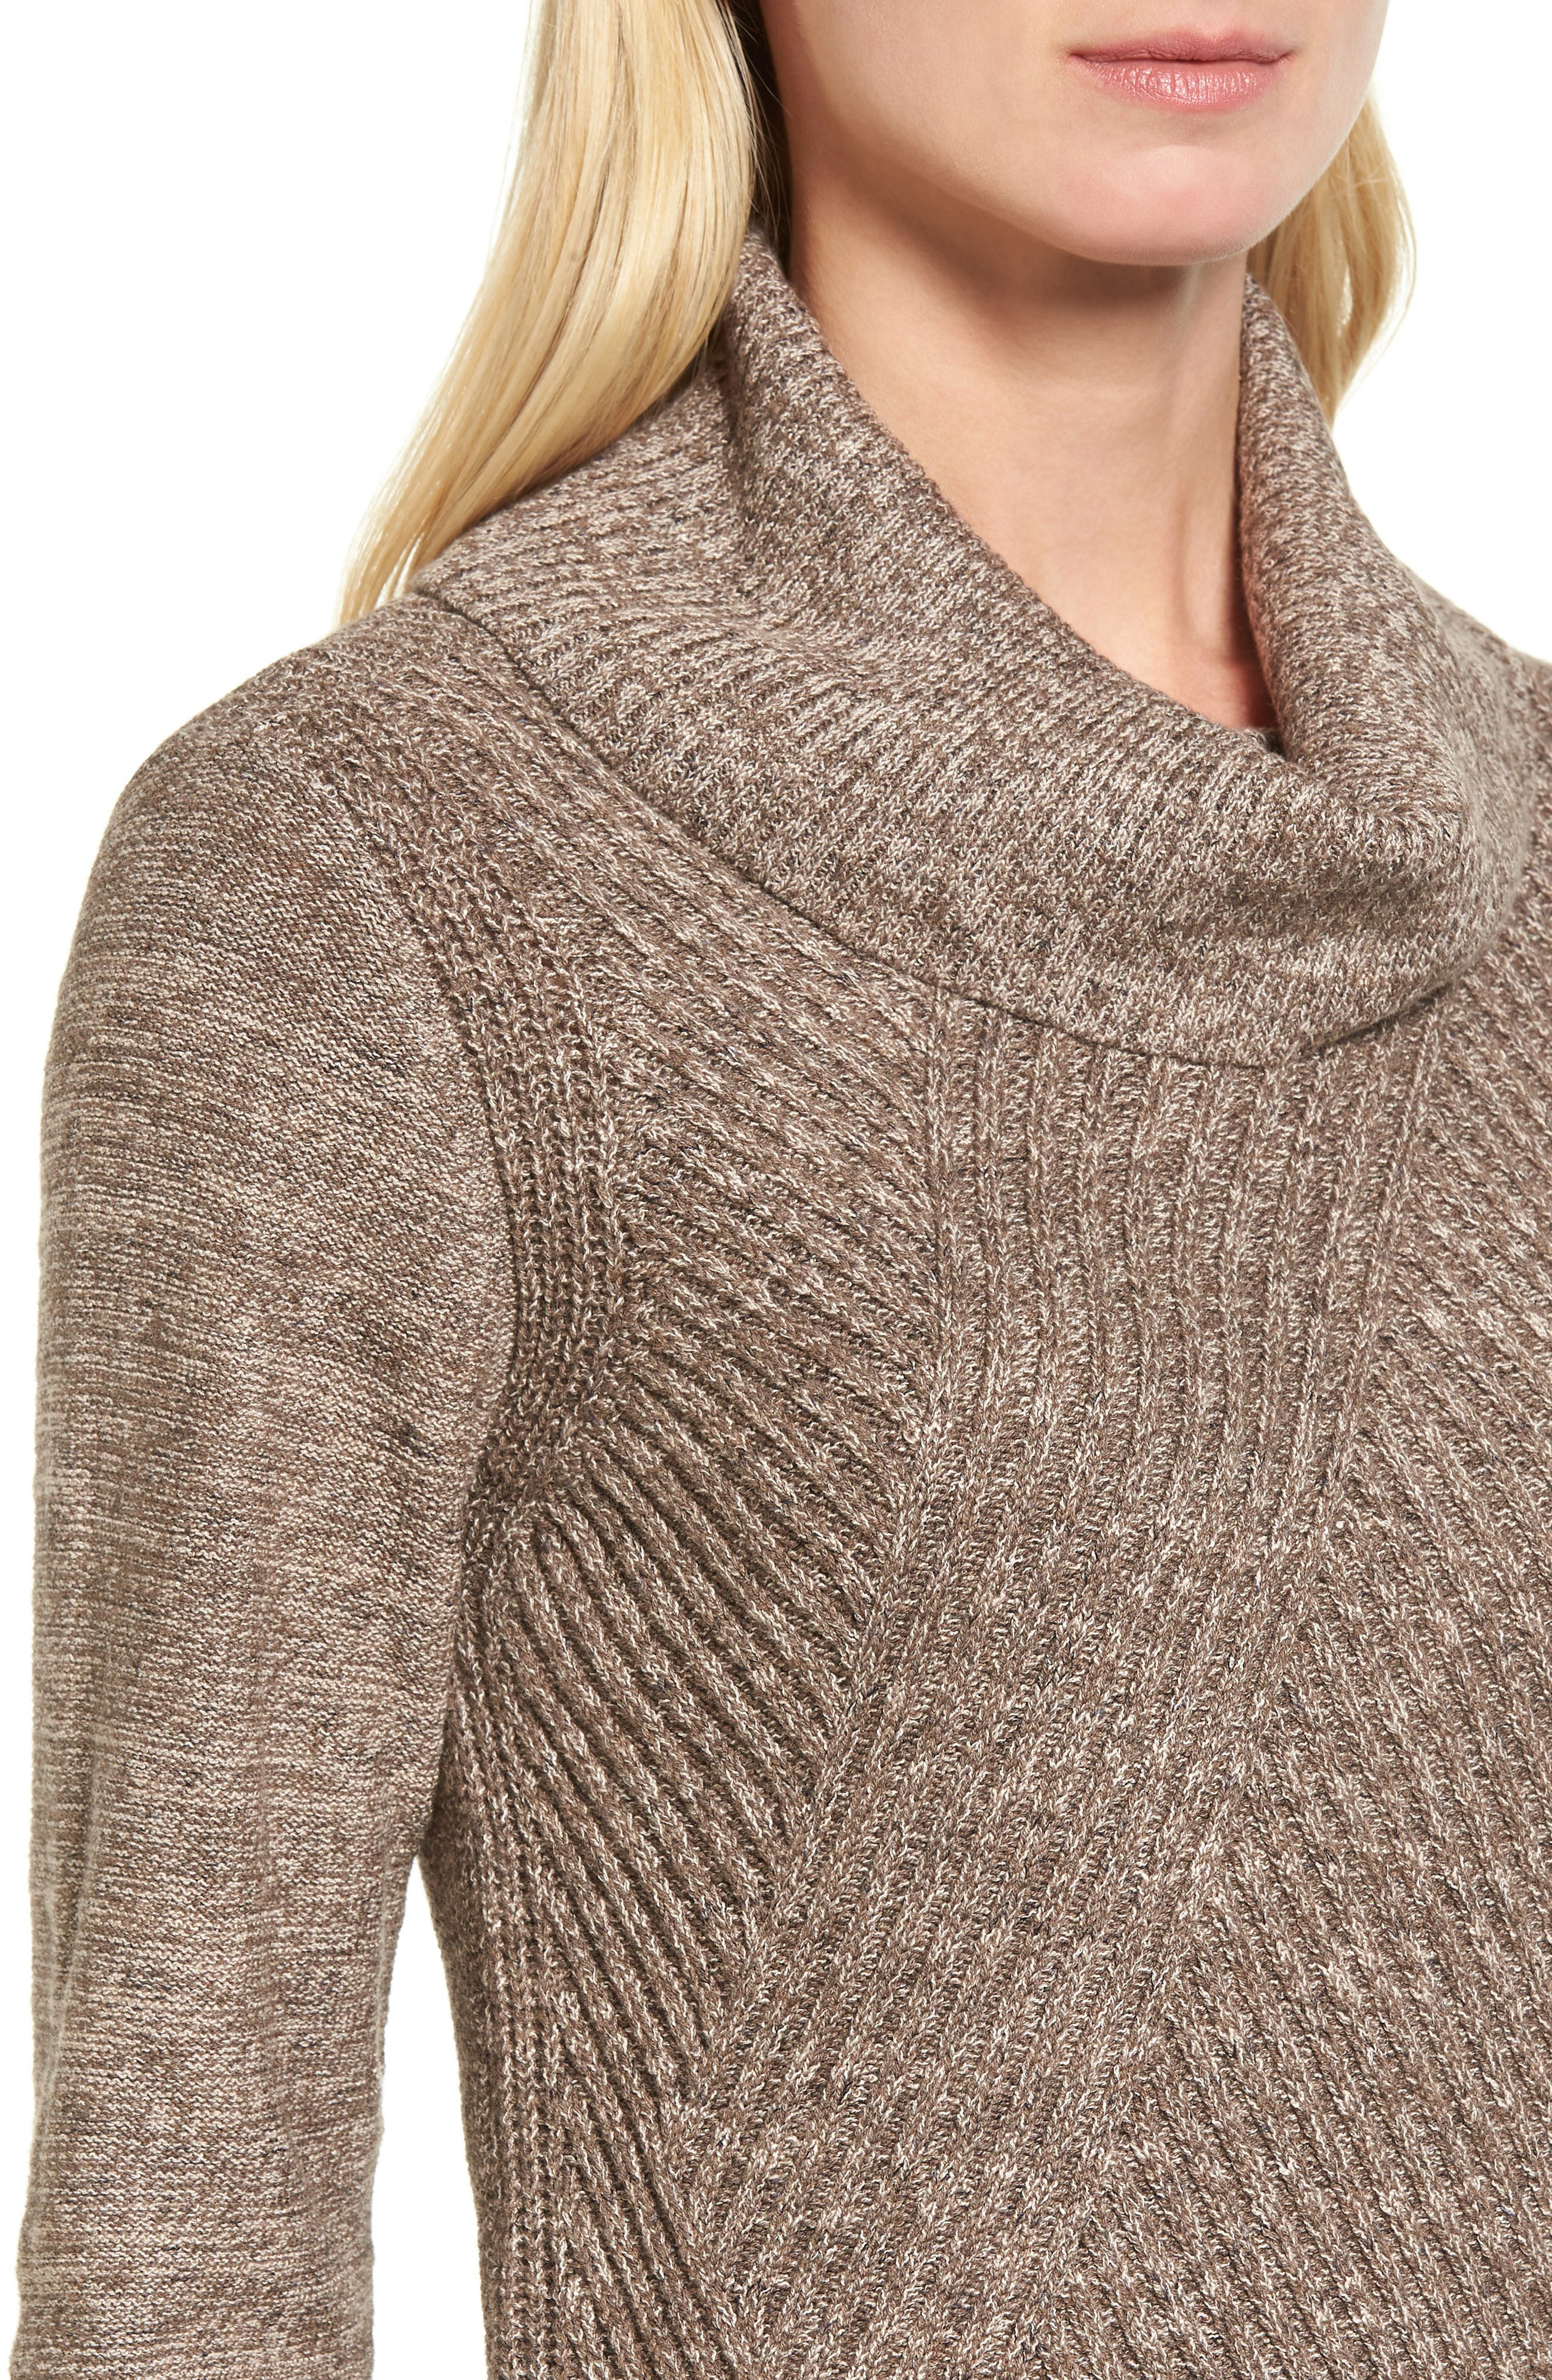 North Star Turtleneck Tunic,                             Alternate thumbnail 12, color,